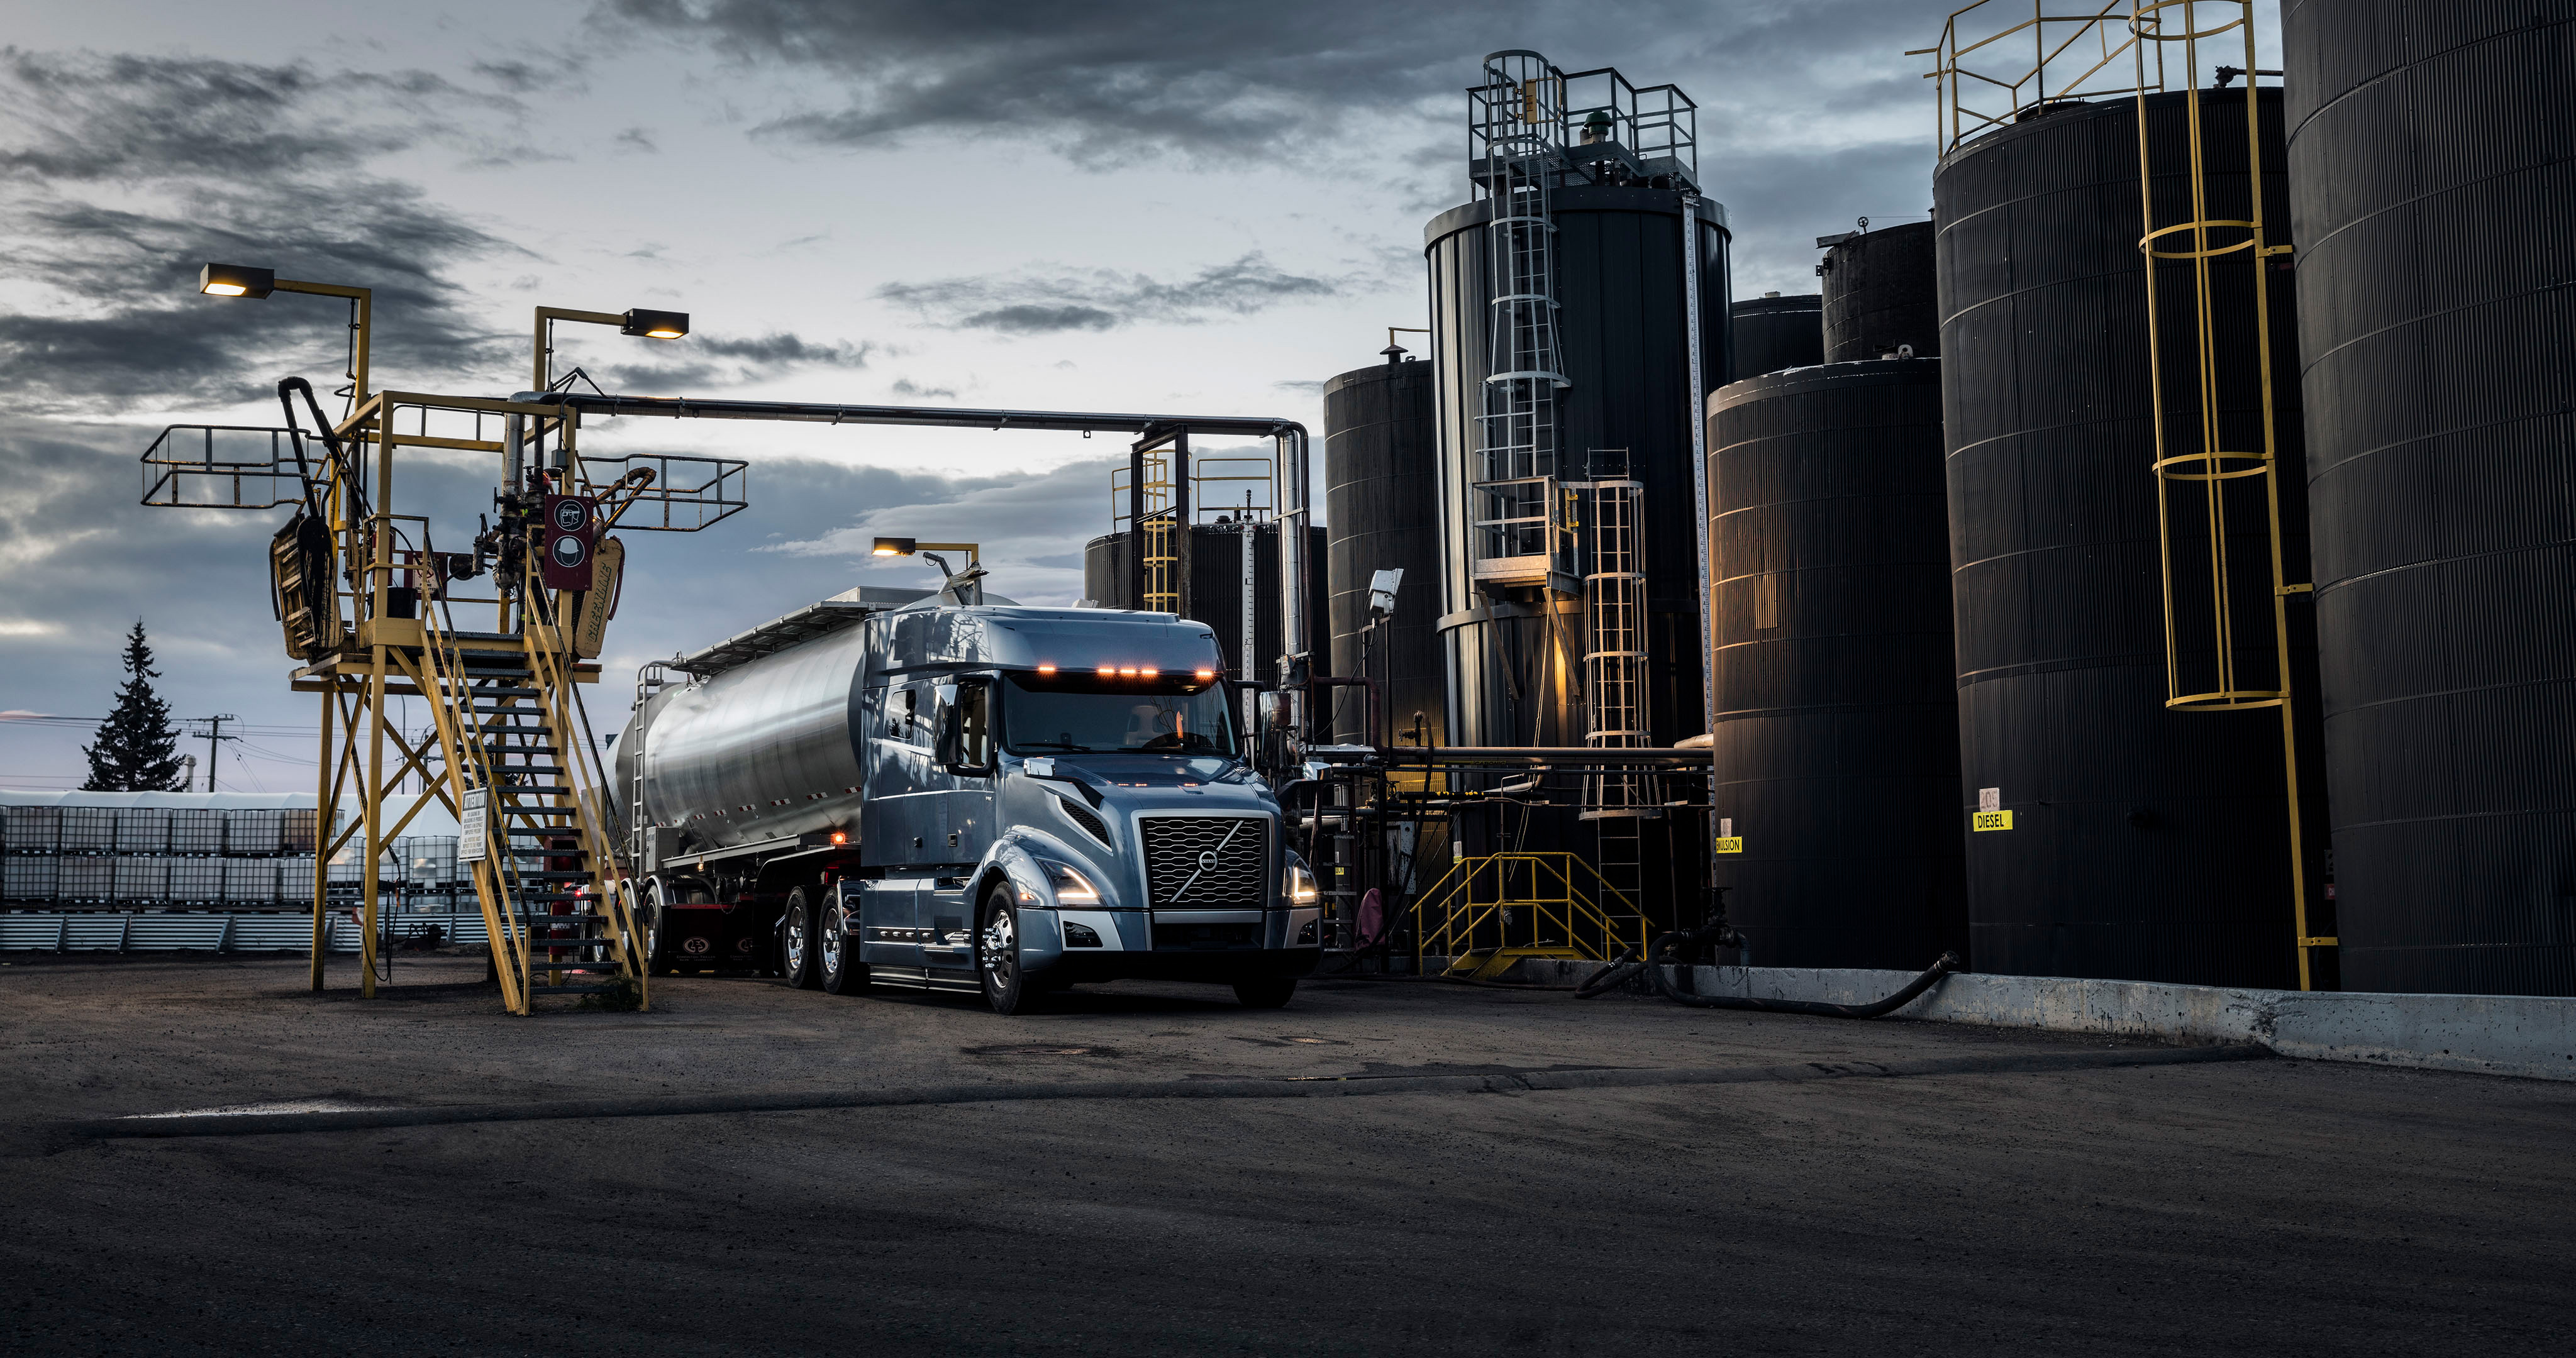 Volvo vnl 740 hd cars 4k wallpapers images backgrounds photos and pictures - Volvo vnl wallpaper ...